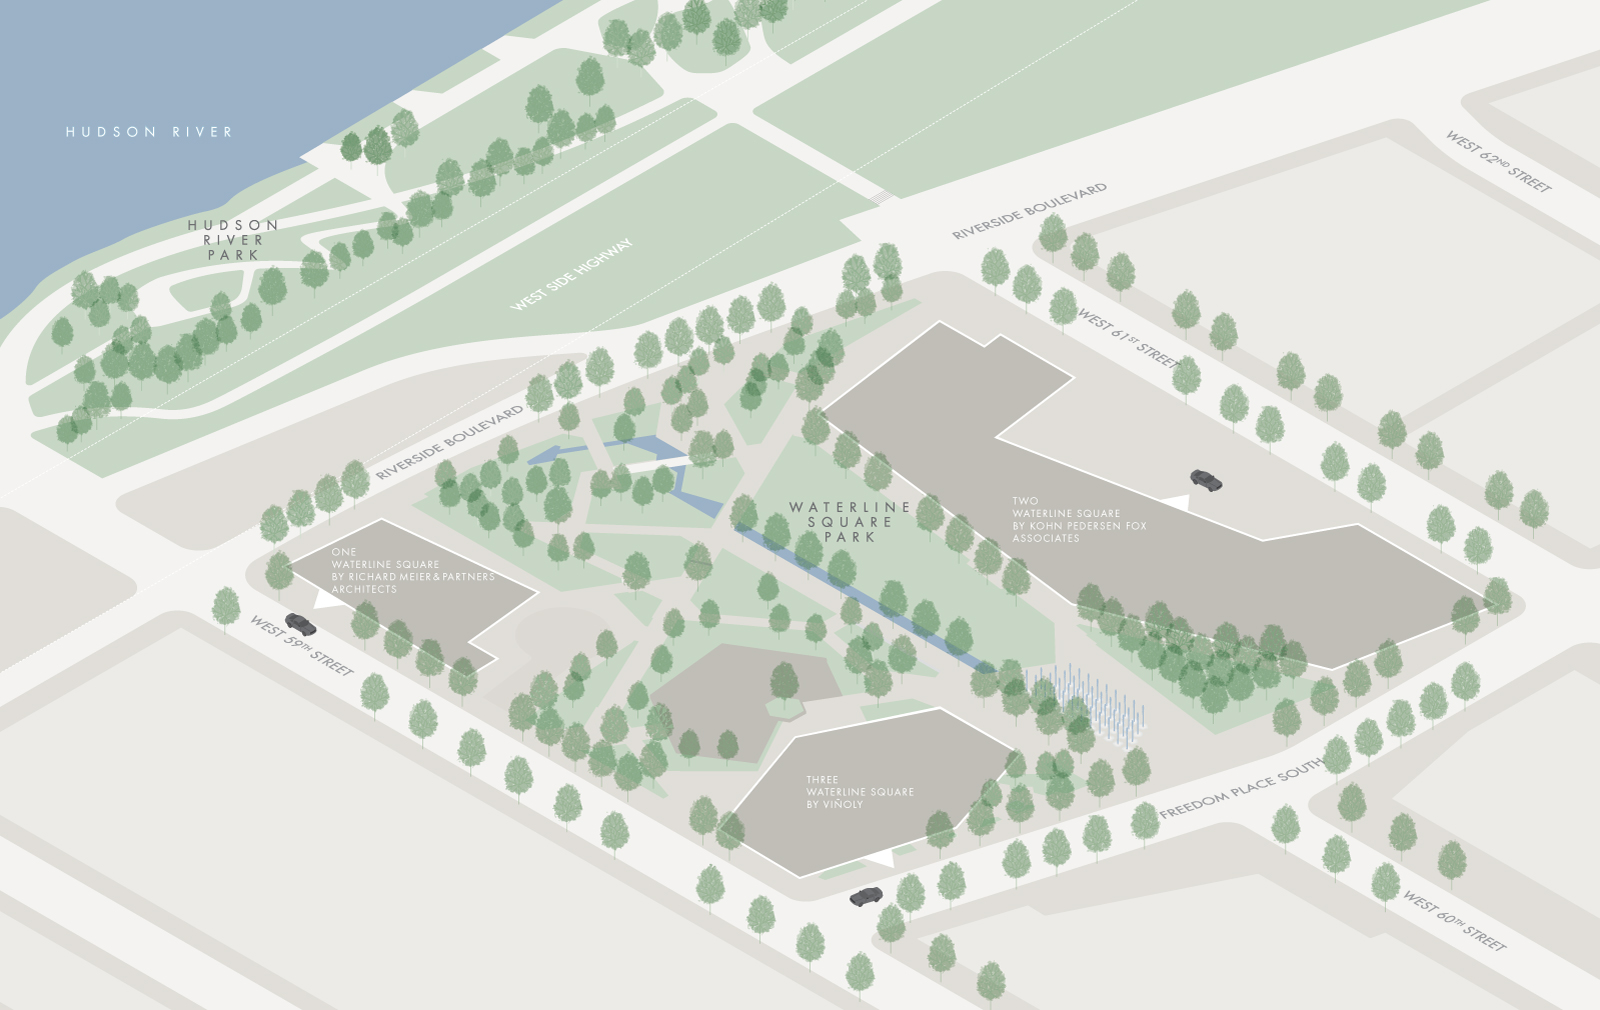 map of waterline square park